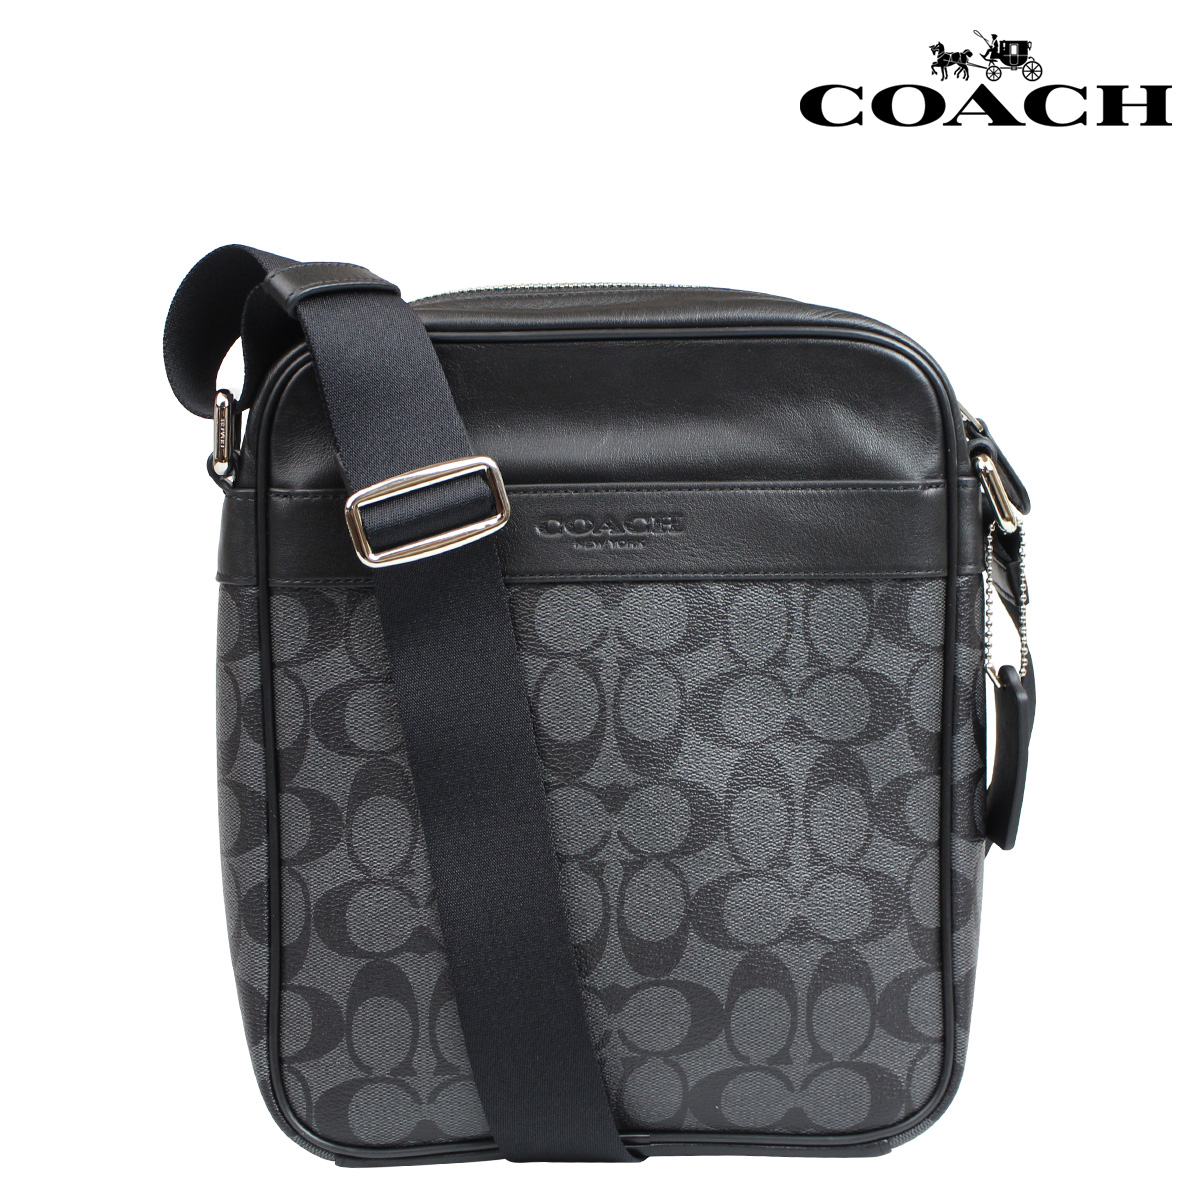 SneaK Online Shop | Rakuten Global Market: Coach COACH bag ...